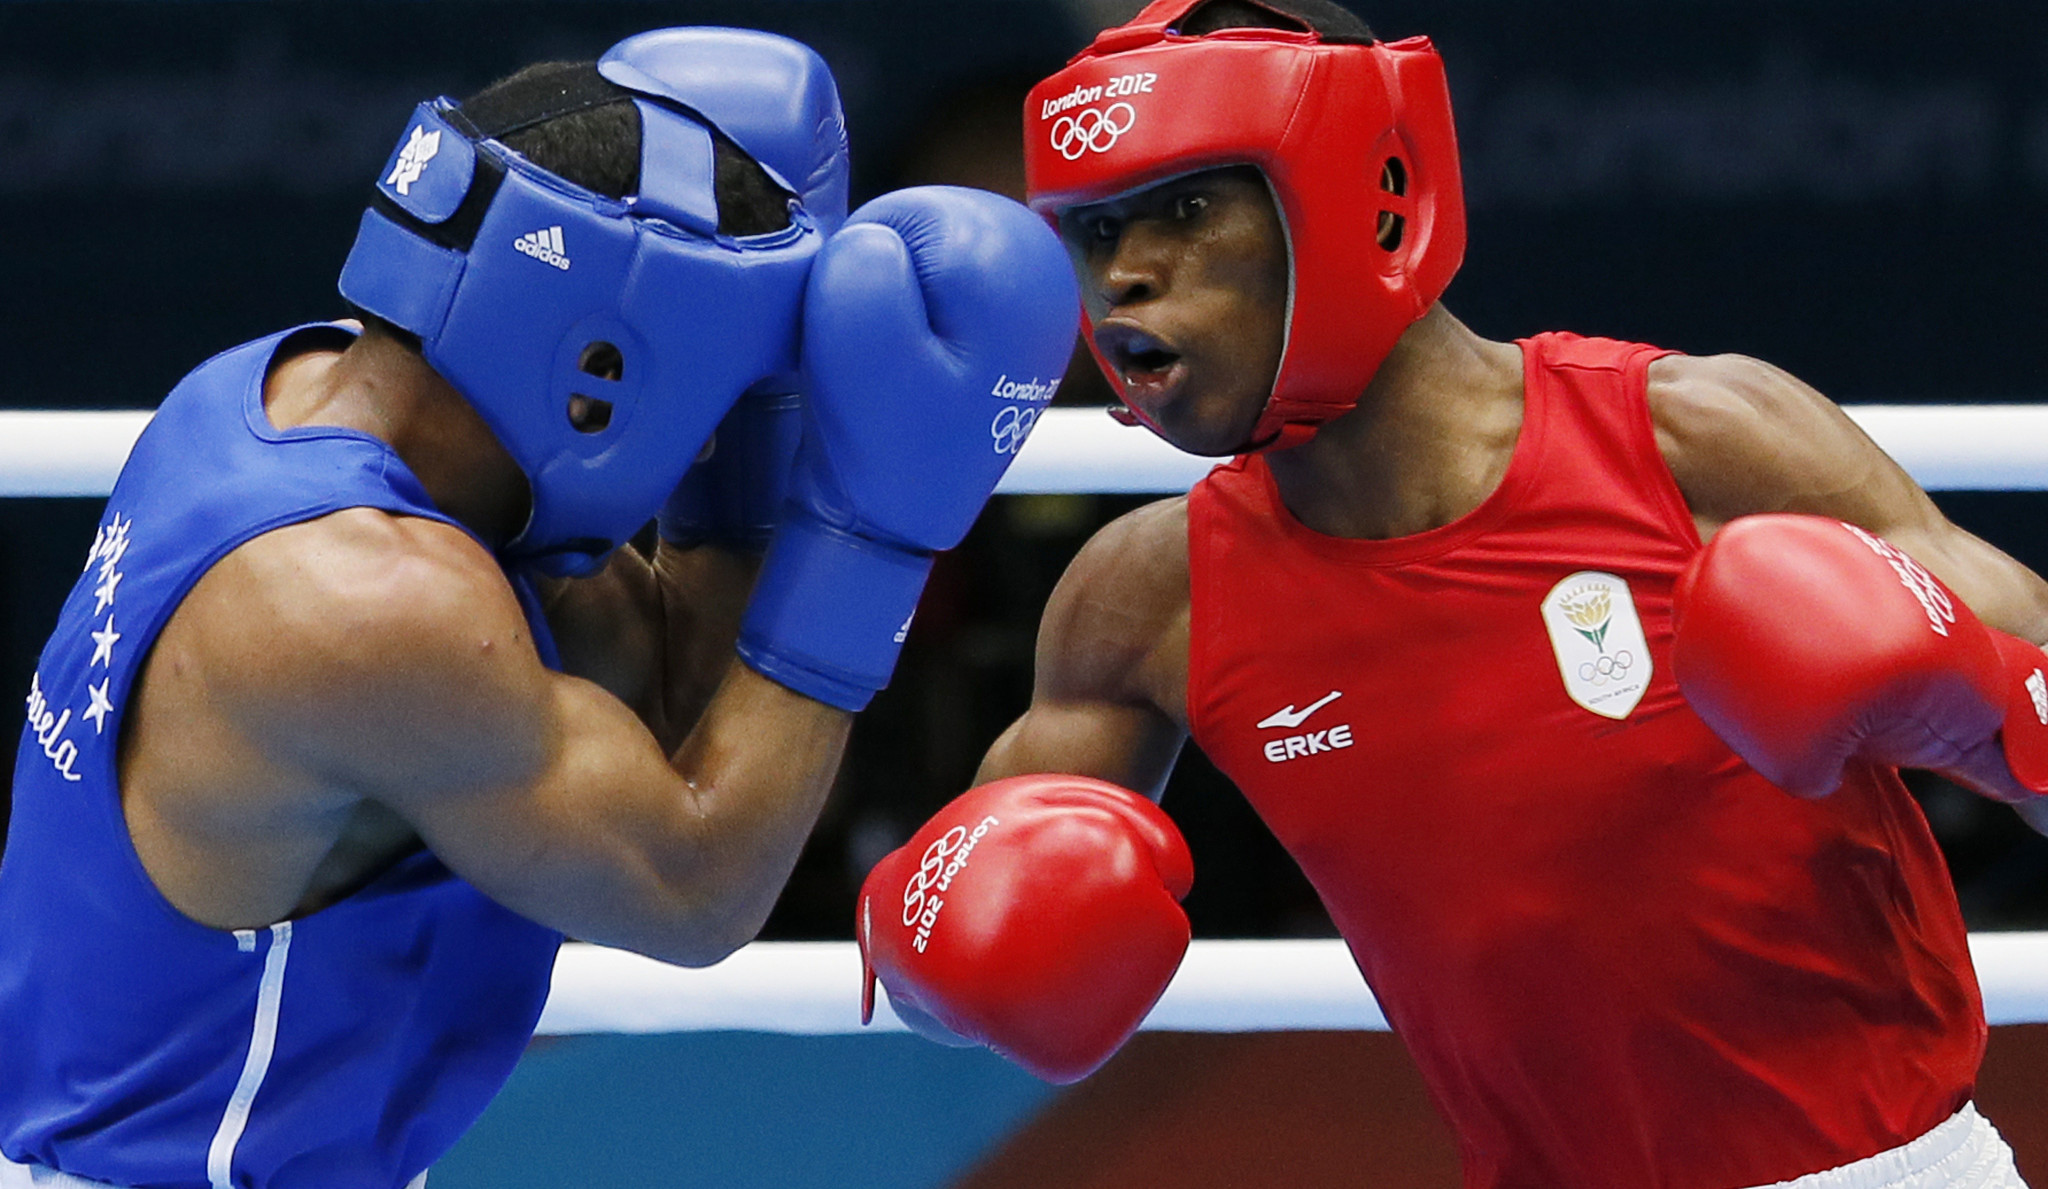 Siphiwe Lusizi, right, boxes for South Africa at London 2012 when the country last appeared at the Olympic Games ©Getty Images